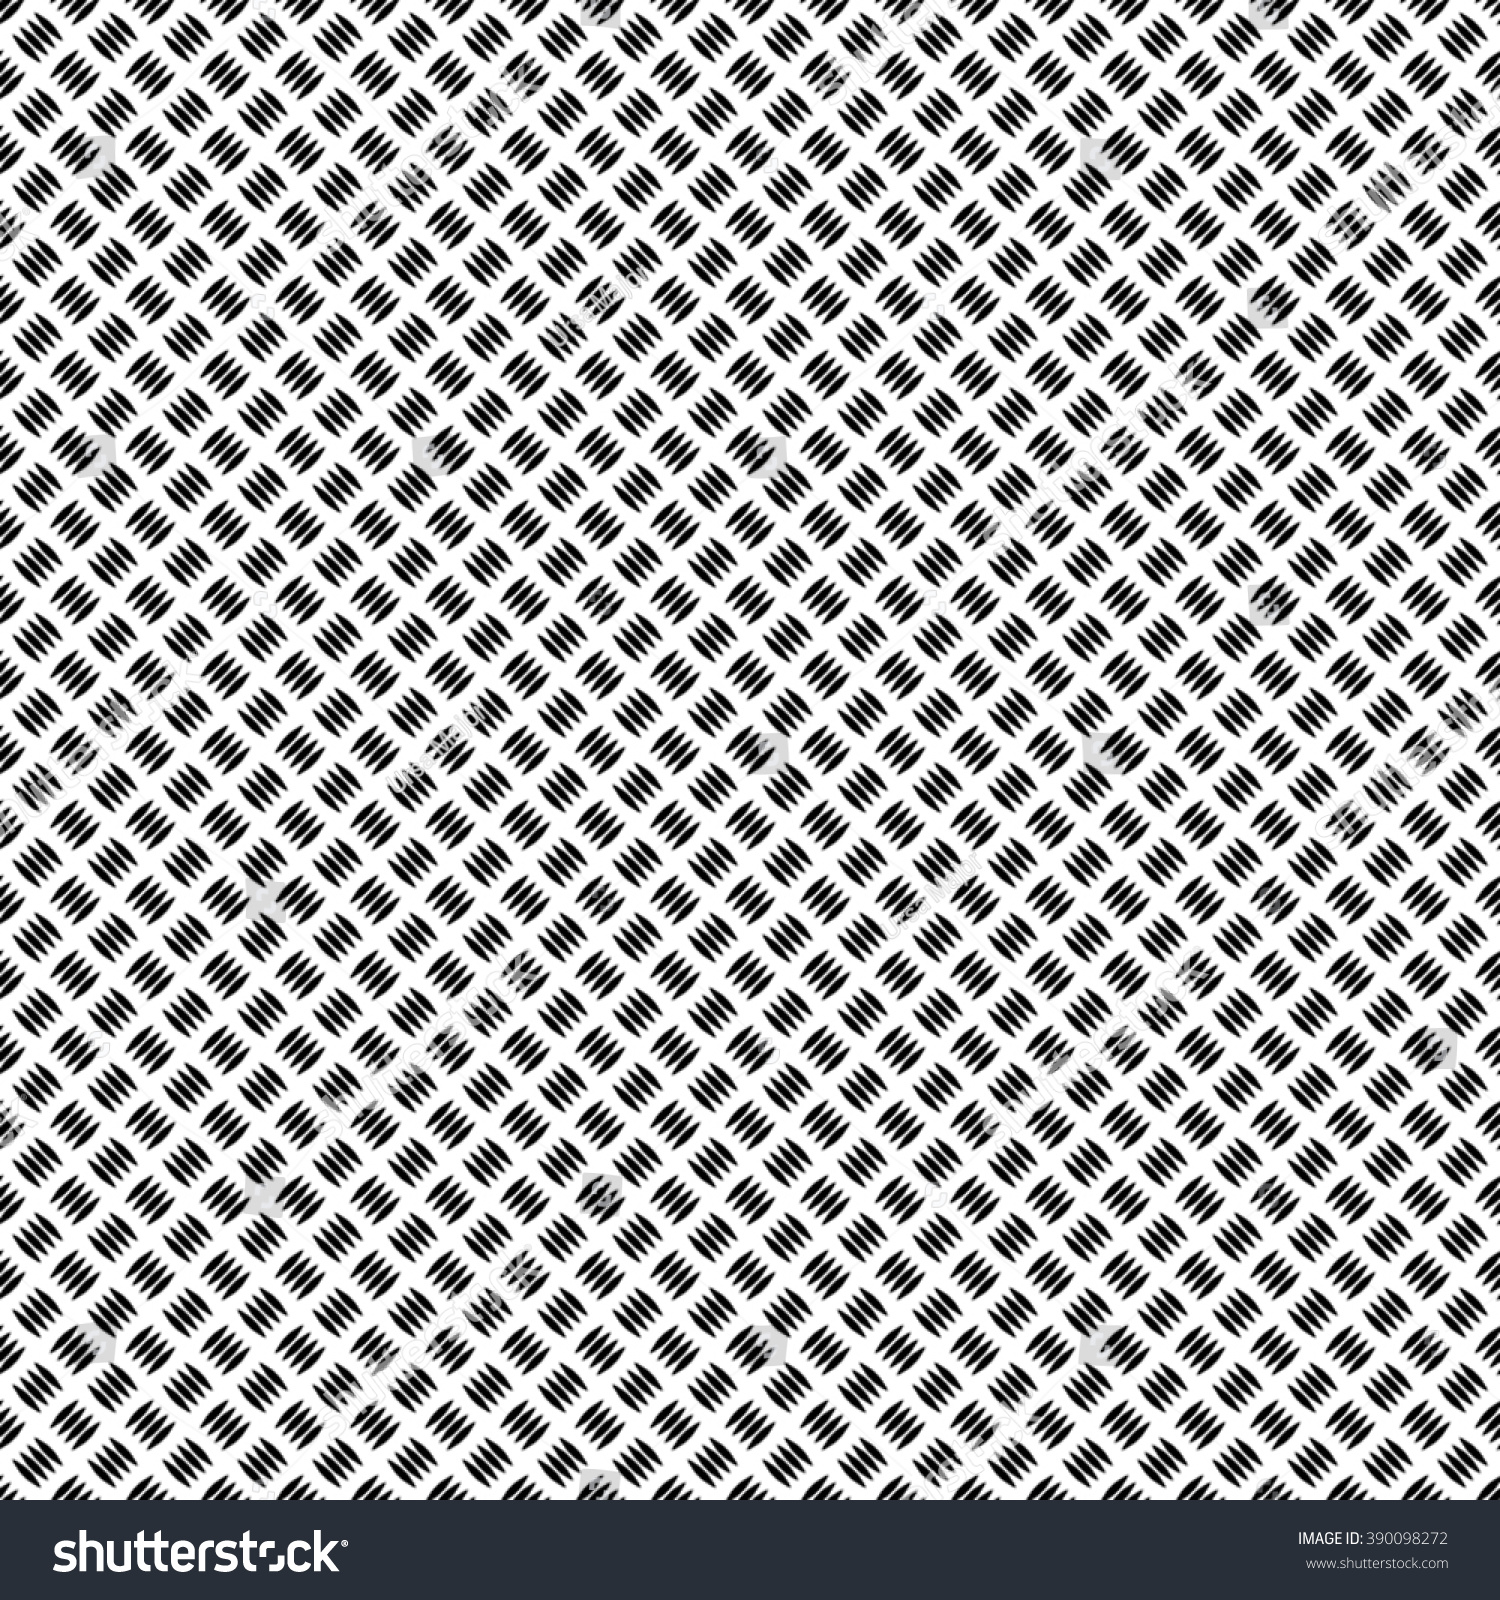 Overlay Corrugated Metal Seamless Texture For Your Design  EPS10 vector. Overlay Corrugated Metal Seamless Texture Your Stock Vector